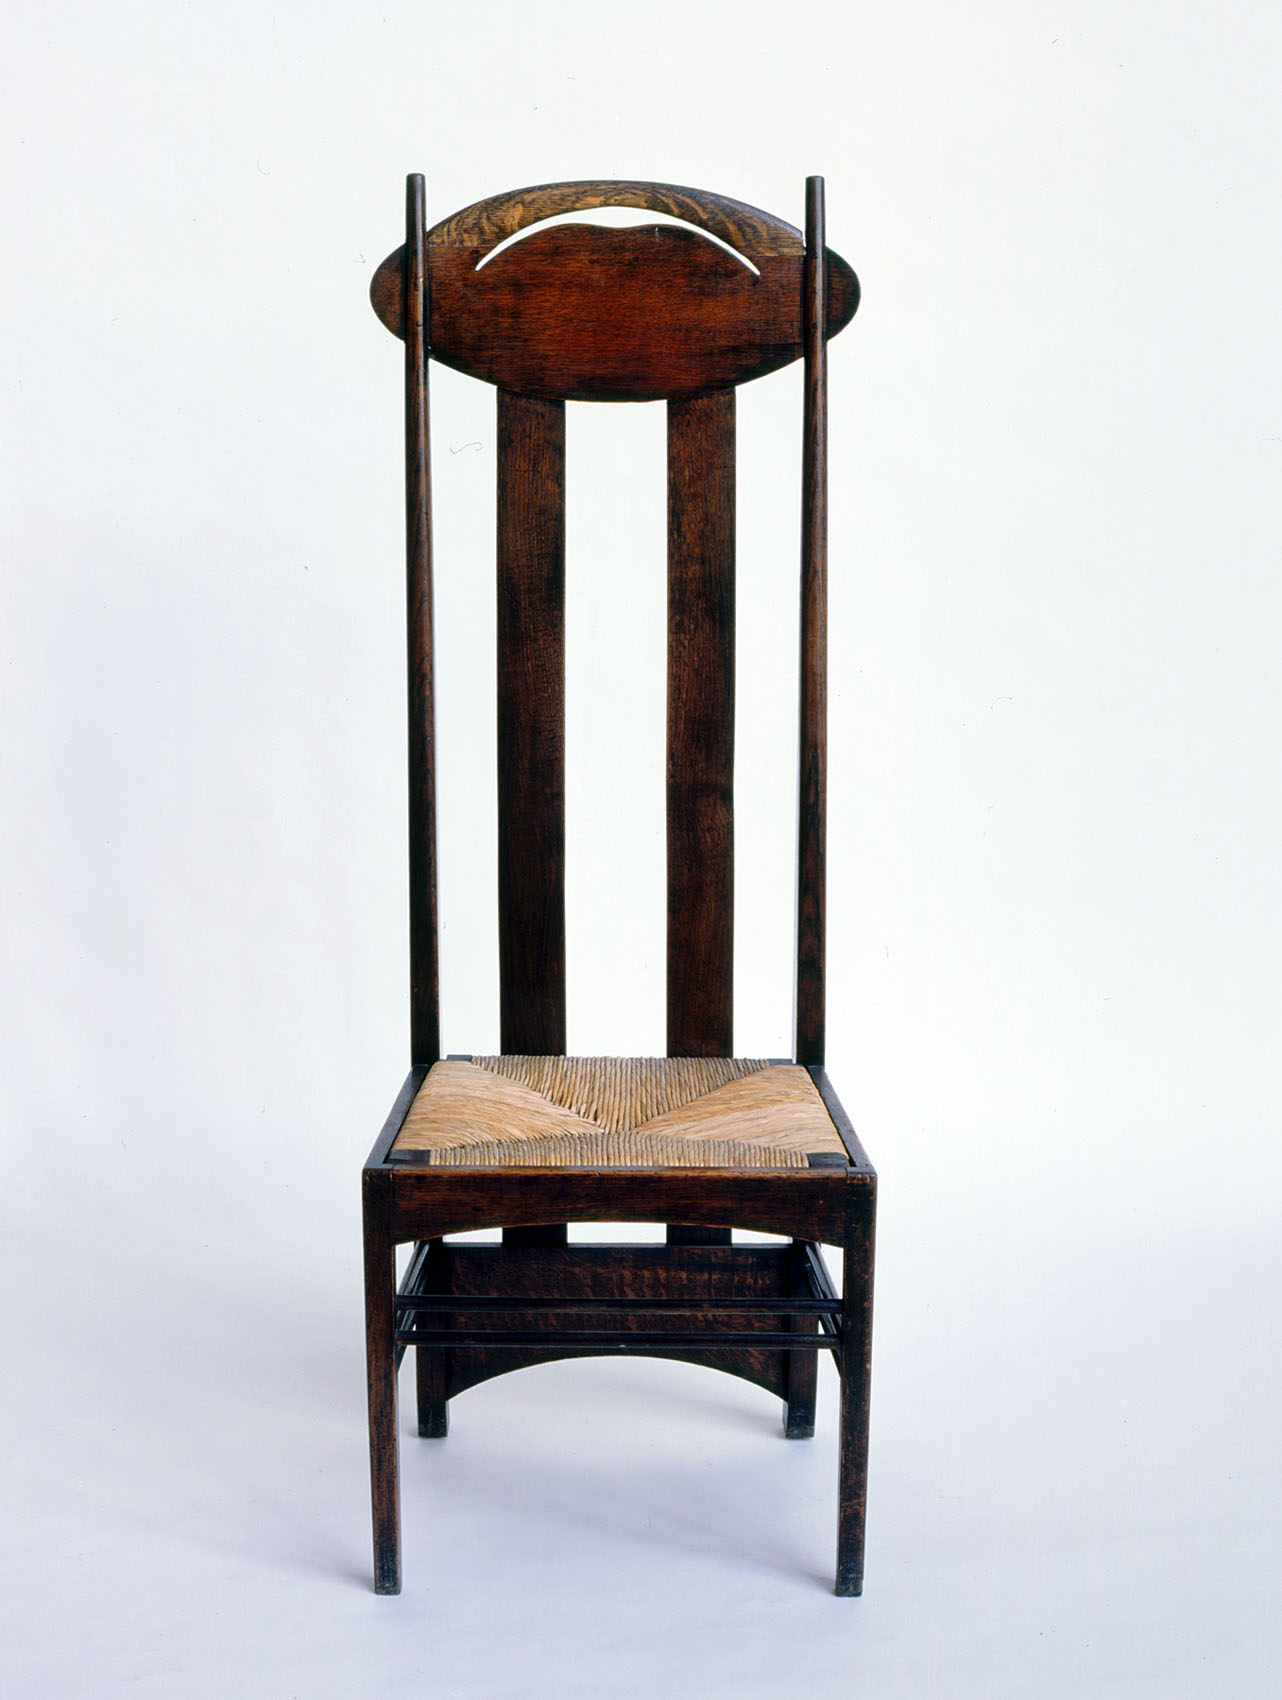 Argyle High Back Chair, designed by Charles Rennie Mackintosh for 120 Mains Street, Glasgow and also for the Luncheon Room, Argyle Street Tea Rooms, Glasgow, 1897